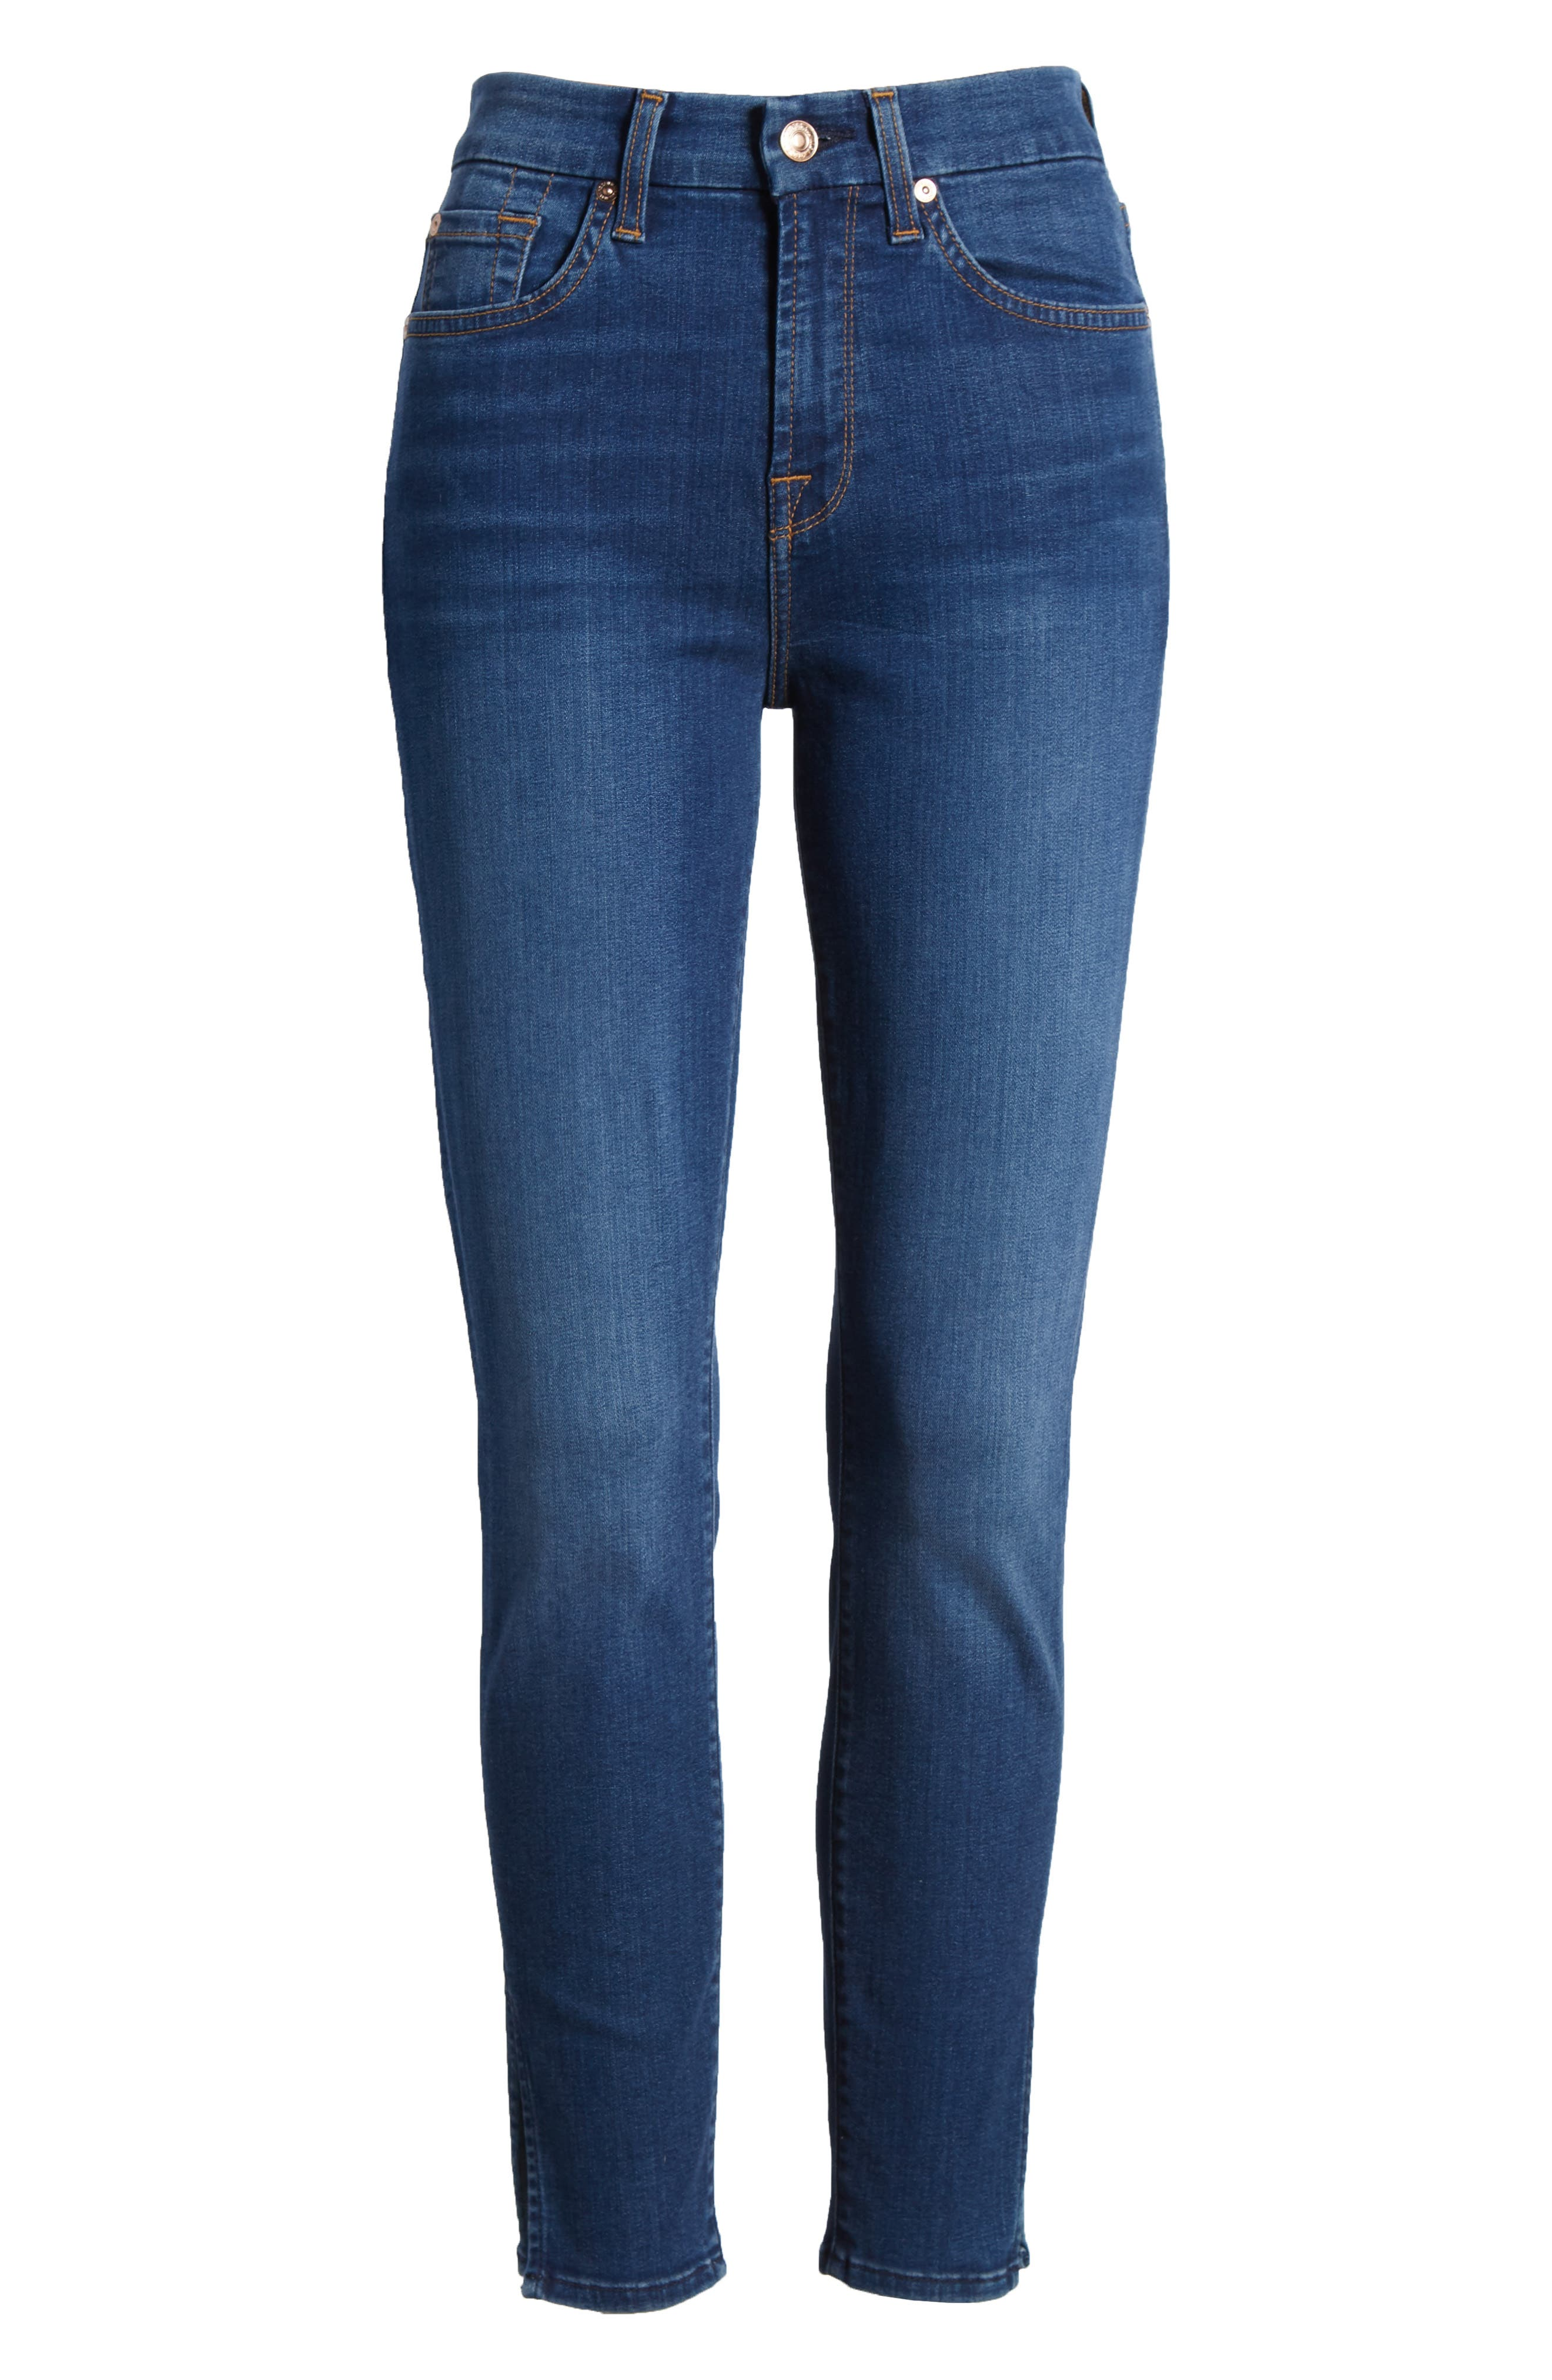 b(air) - Aubrey High Waist Skinny Jeans,                             Alternate thumbnail 7, color,                             400